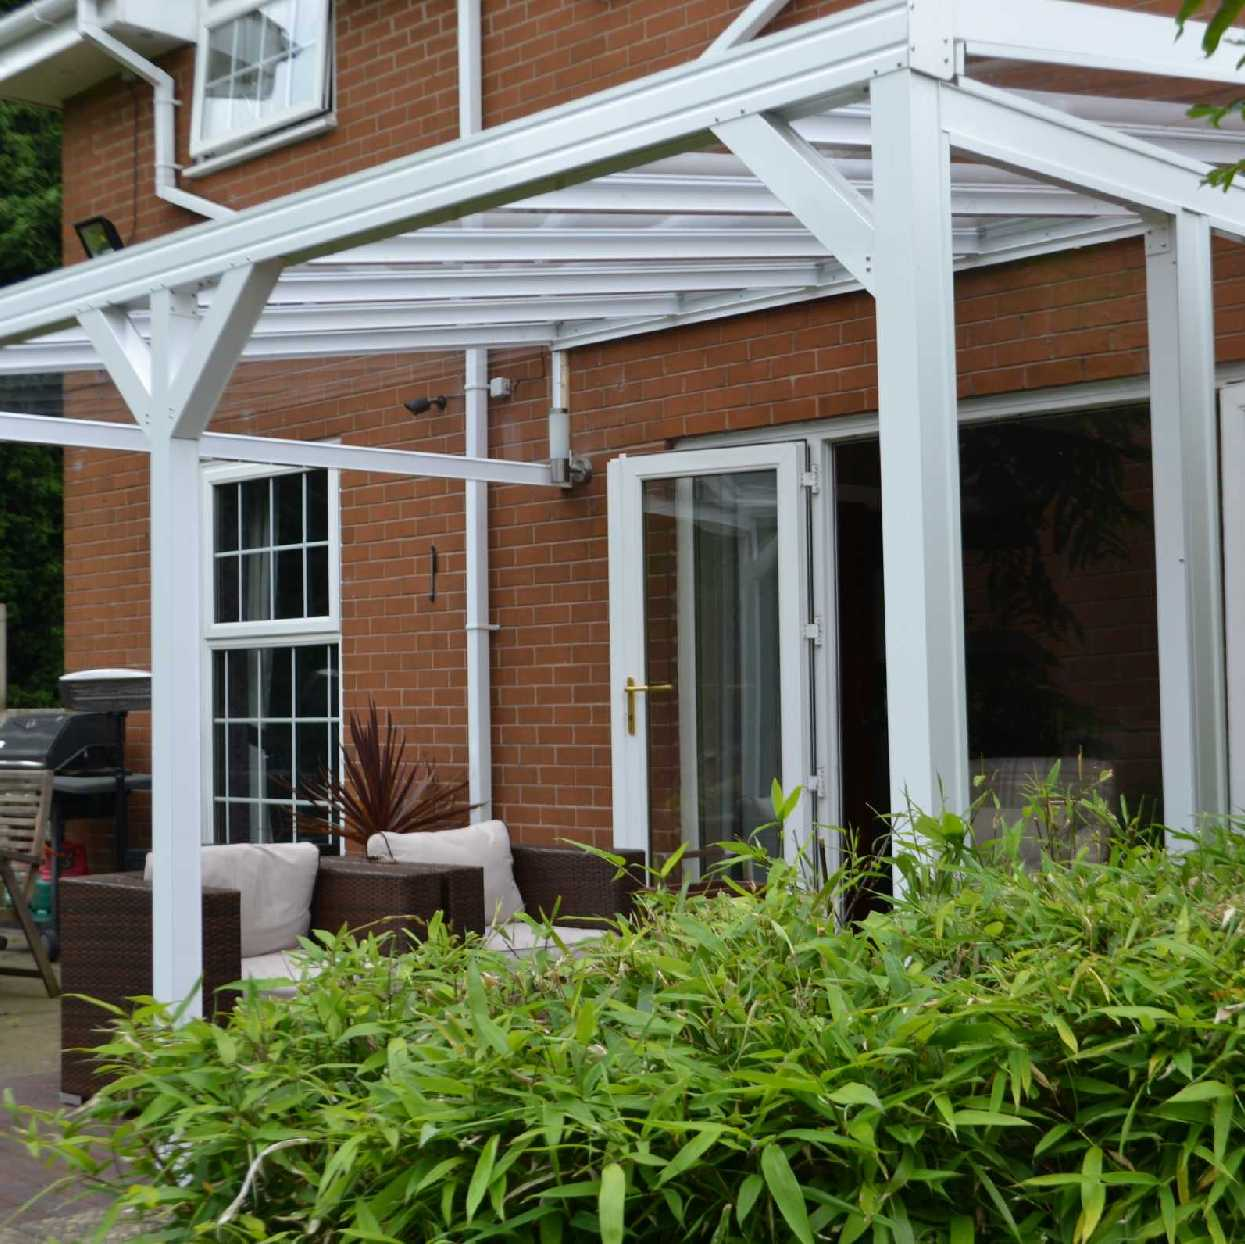 Omega Smart White Lean-To Canopy with 6mm Glass Clear Plate Polycarbonate Glazing - 7.0m (W) x 2.0m (P), (4) Supporting Posts from Omega Build